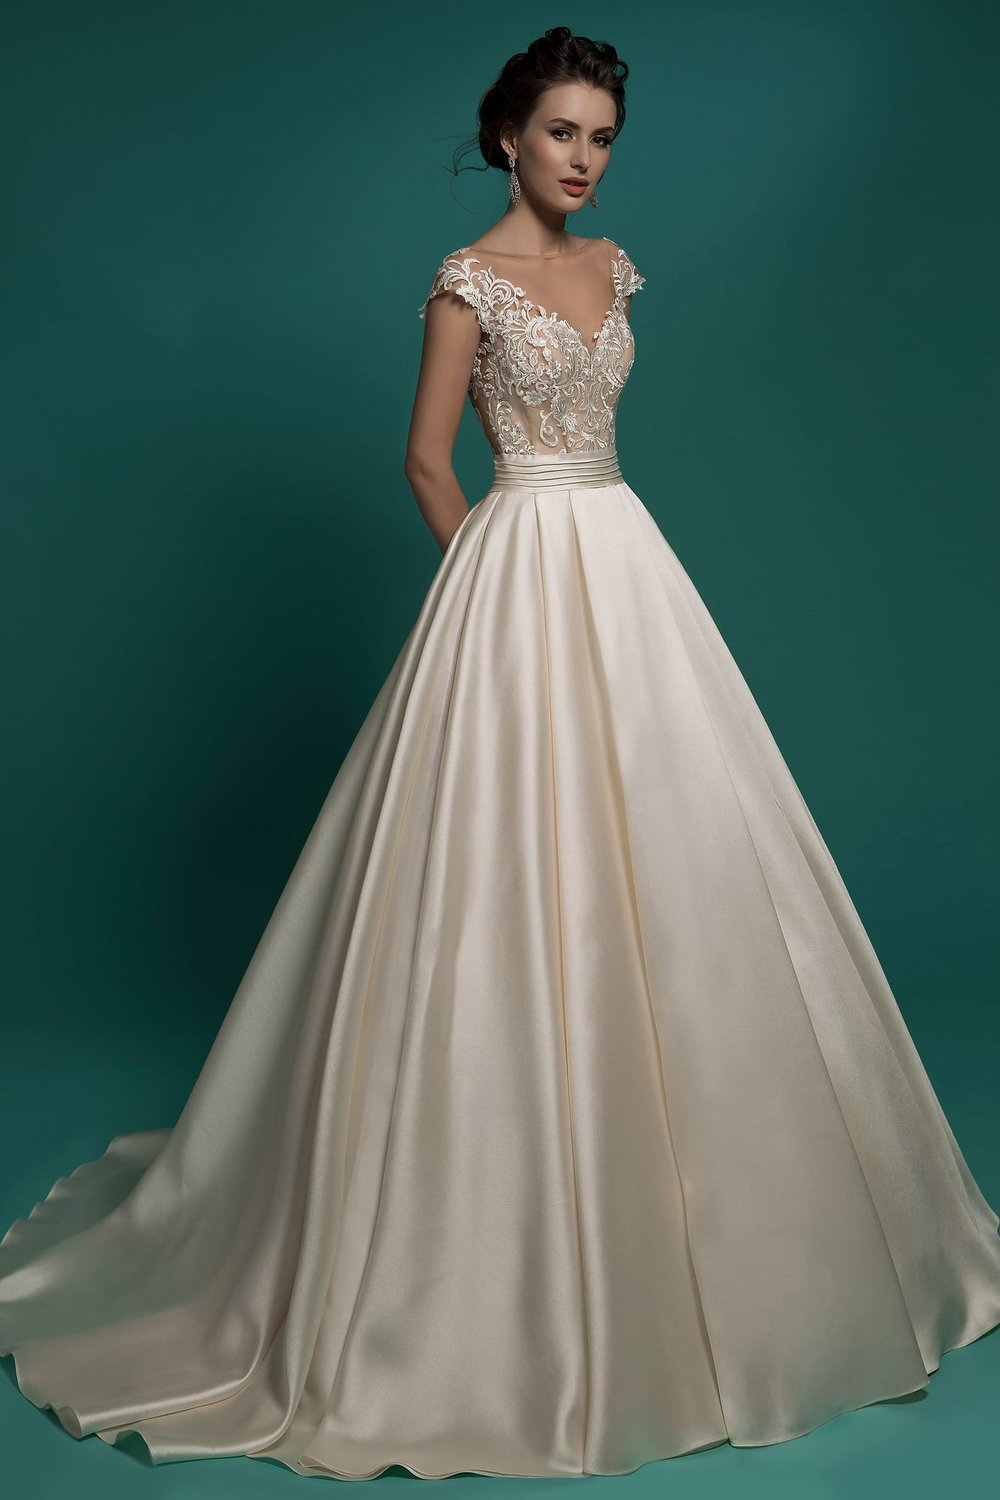 AMBER wedding dress $600